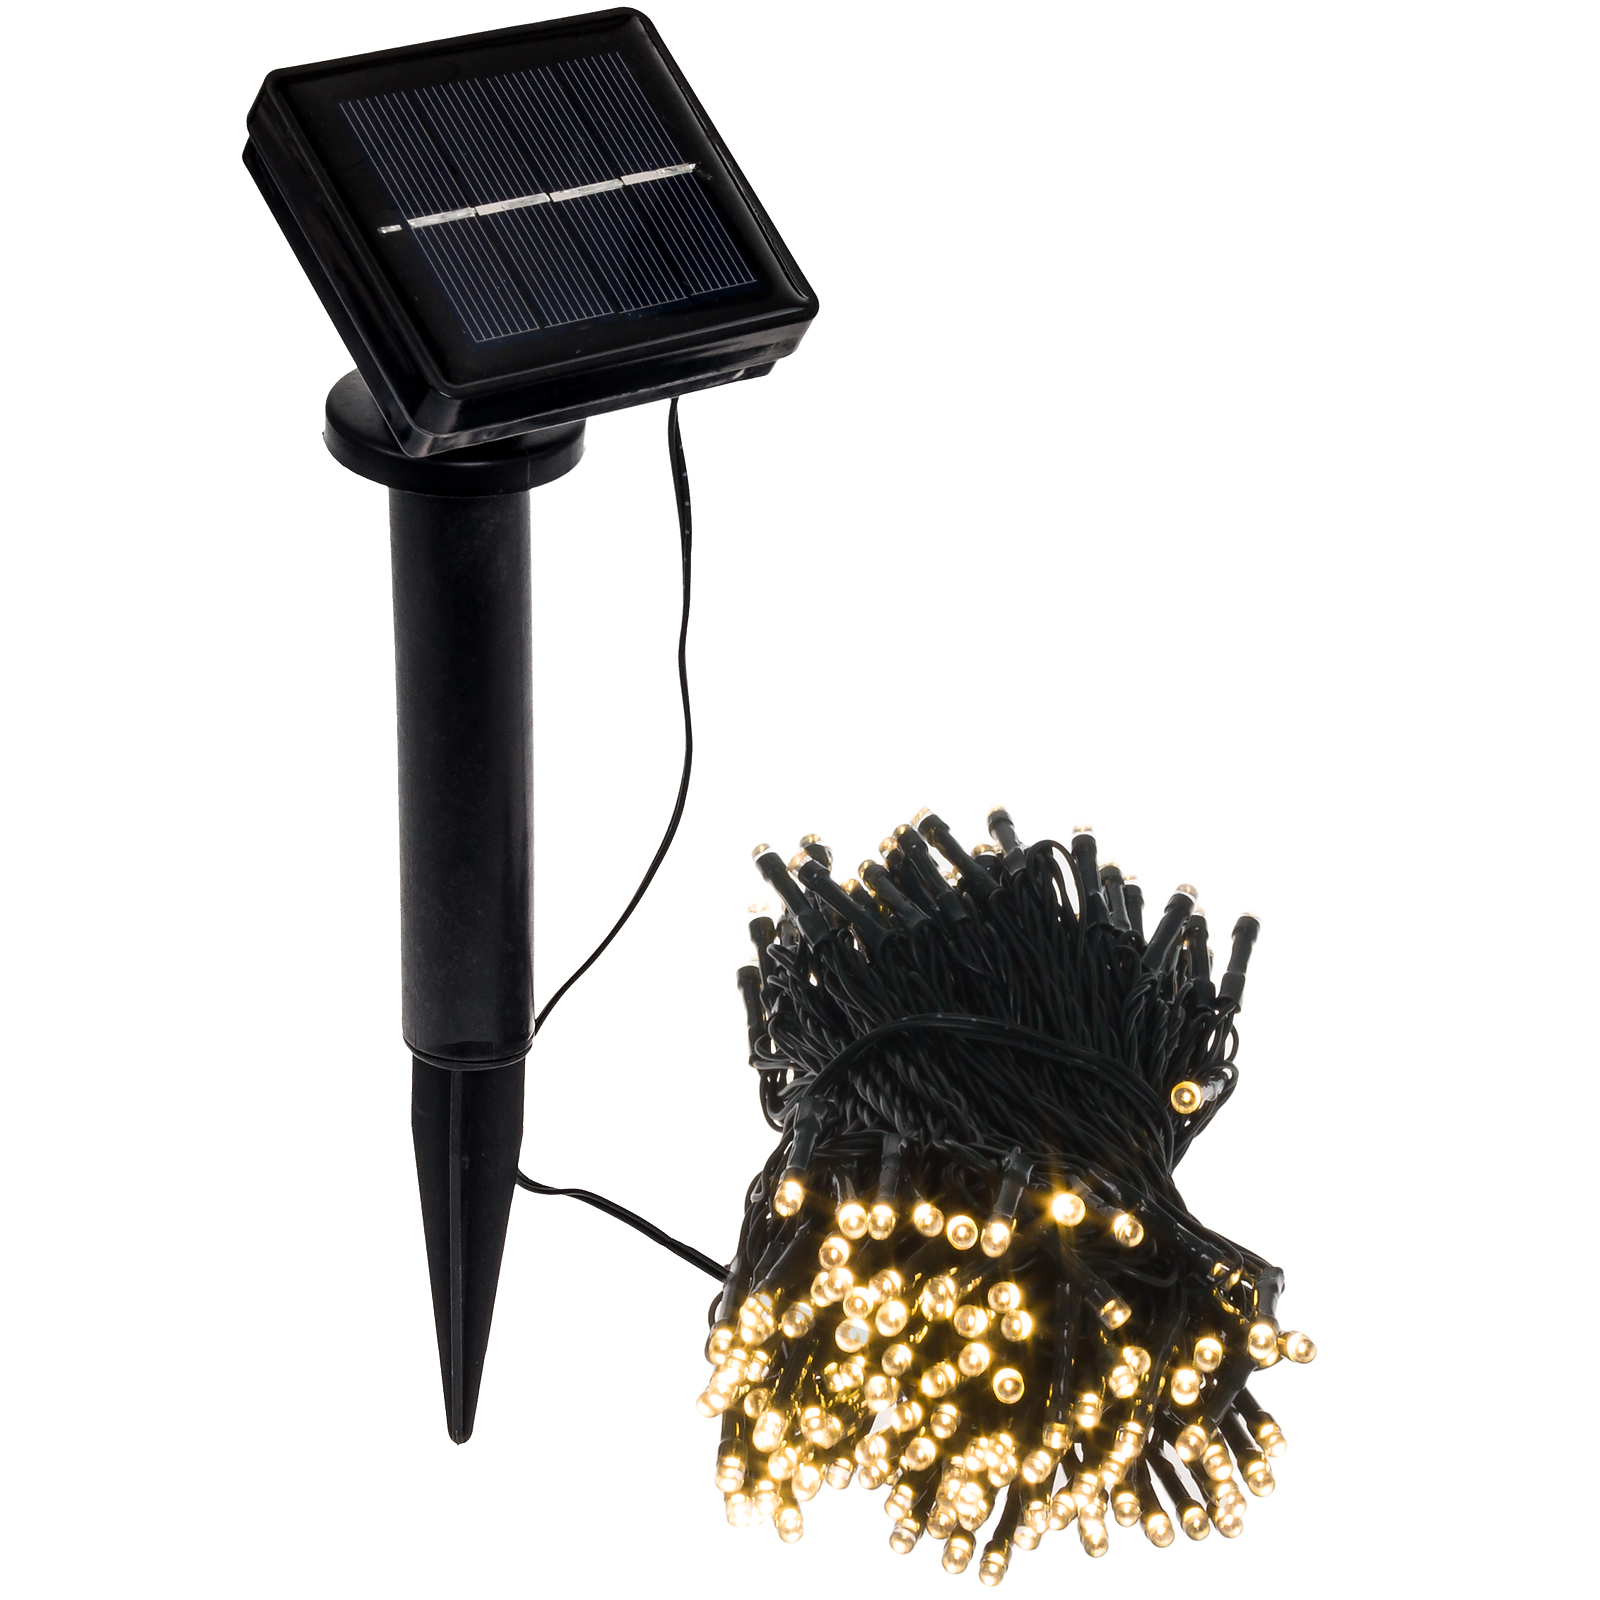 GREENLIGHTING NEW 70' Foot Solar Powered Holiday Rope String Lights w/ 200 LED's